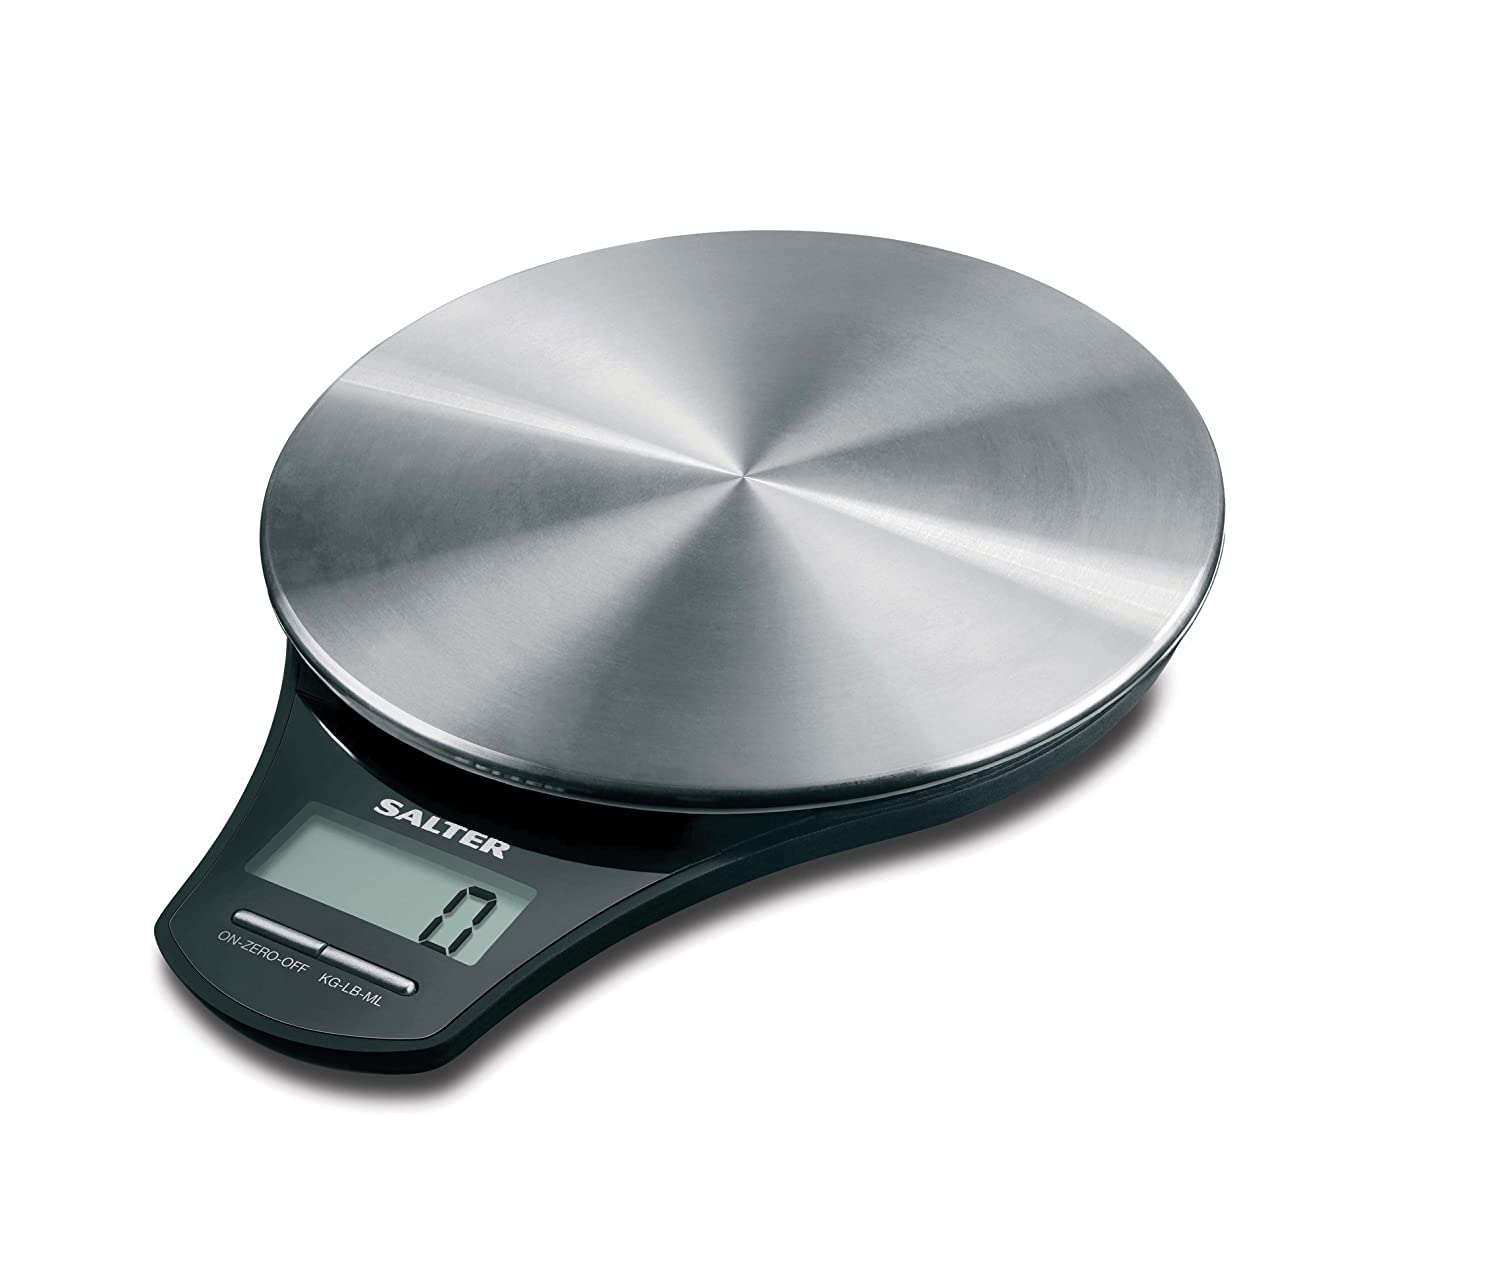 Small Kitchen Weighing Scales Stainless Steel Platform Electronic Kitchen Scale By Salter